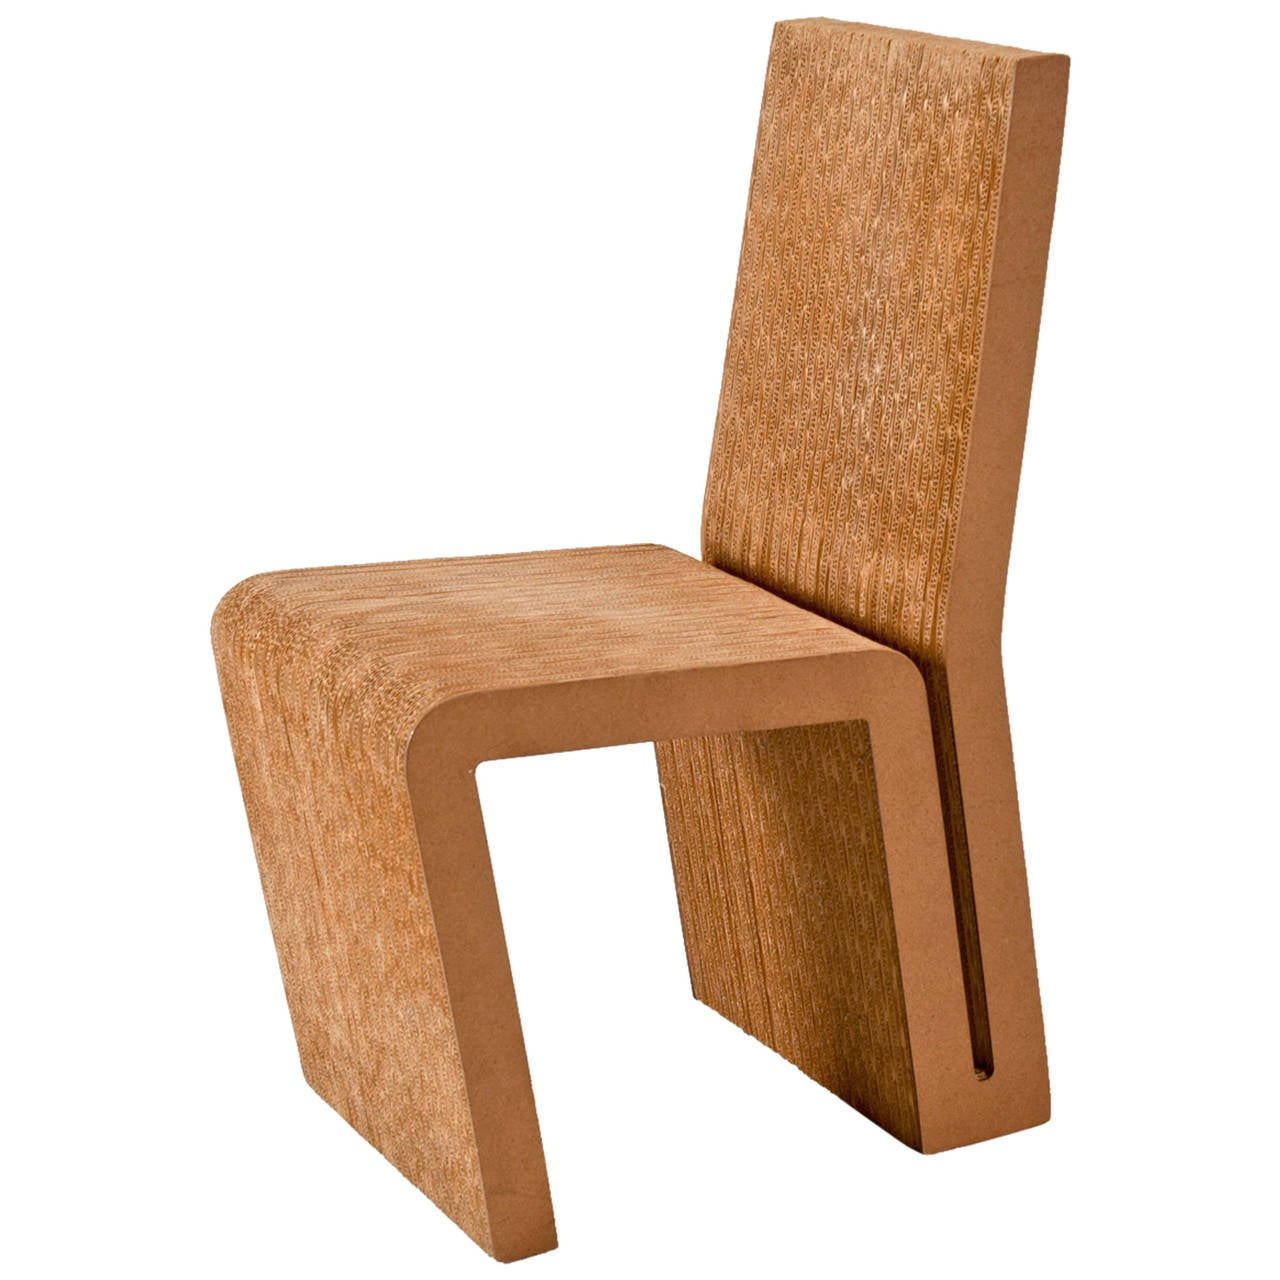 Charmant Frank Gehry Side Chair In Cardboard For Vitra Edition